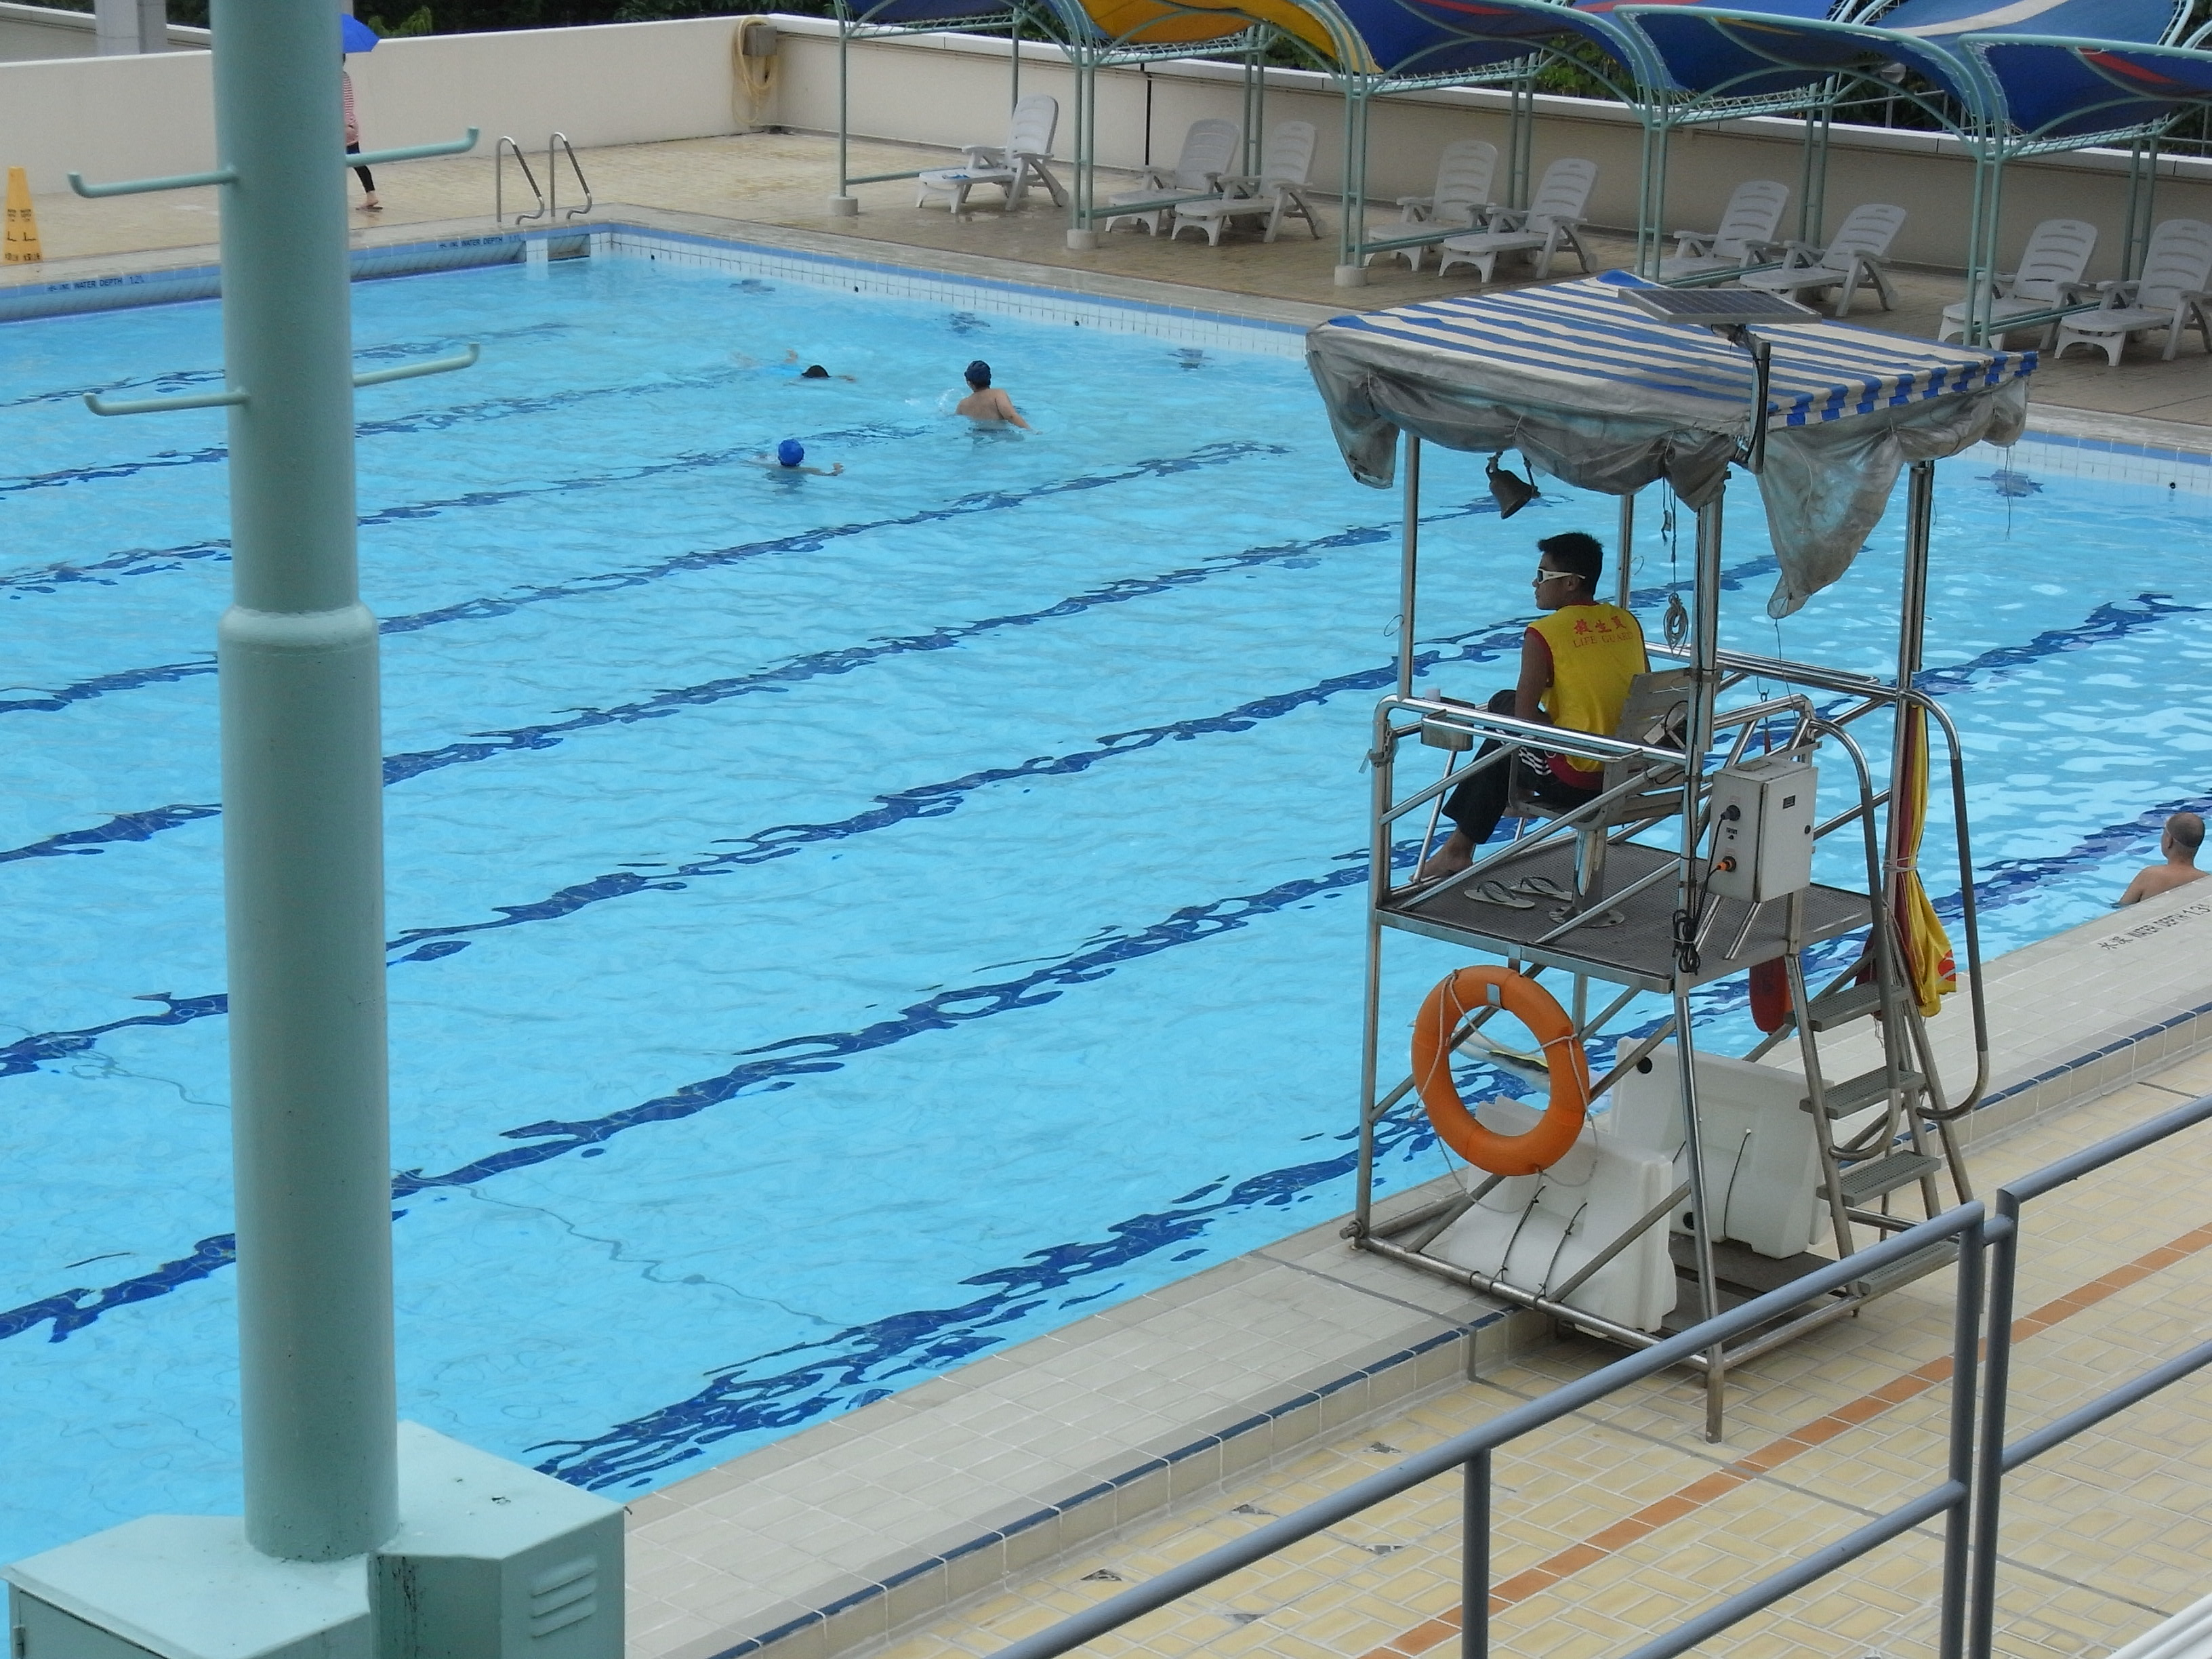 Tales from the pool a lifeguard 39 s training b g summer Swimming pool lifeguard requirements